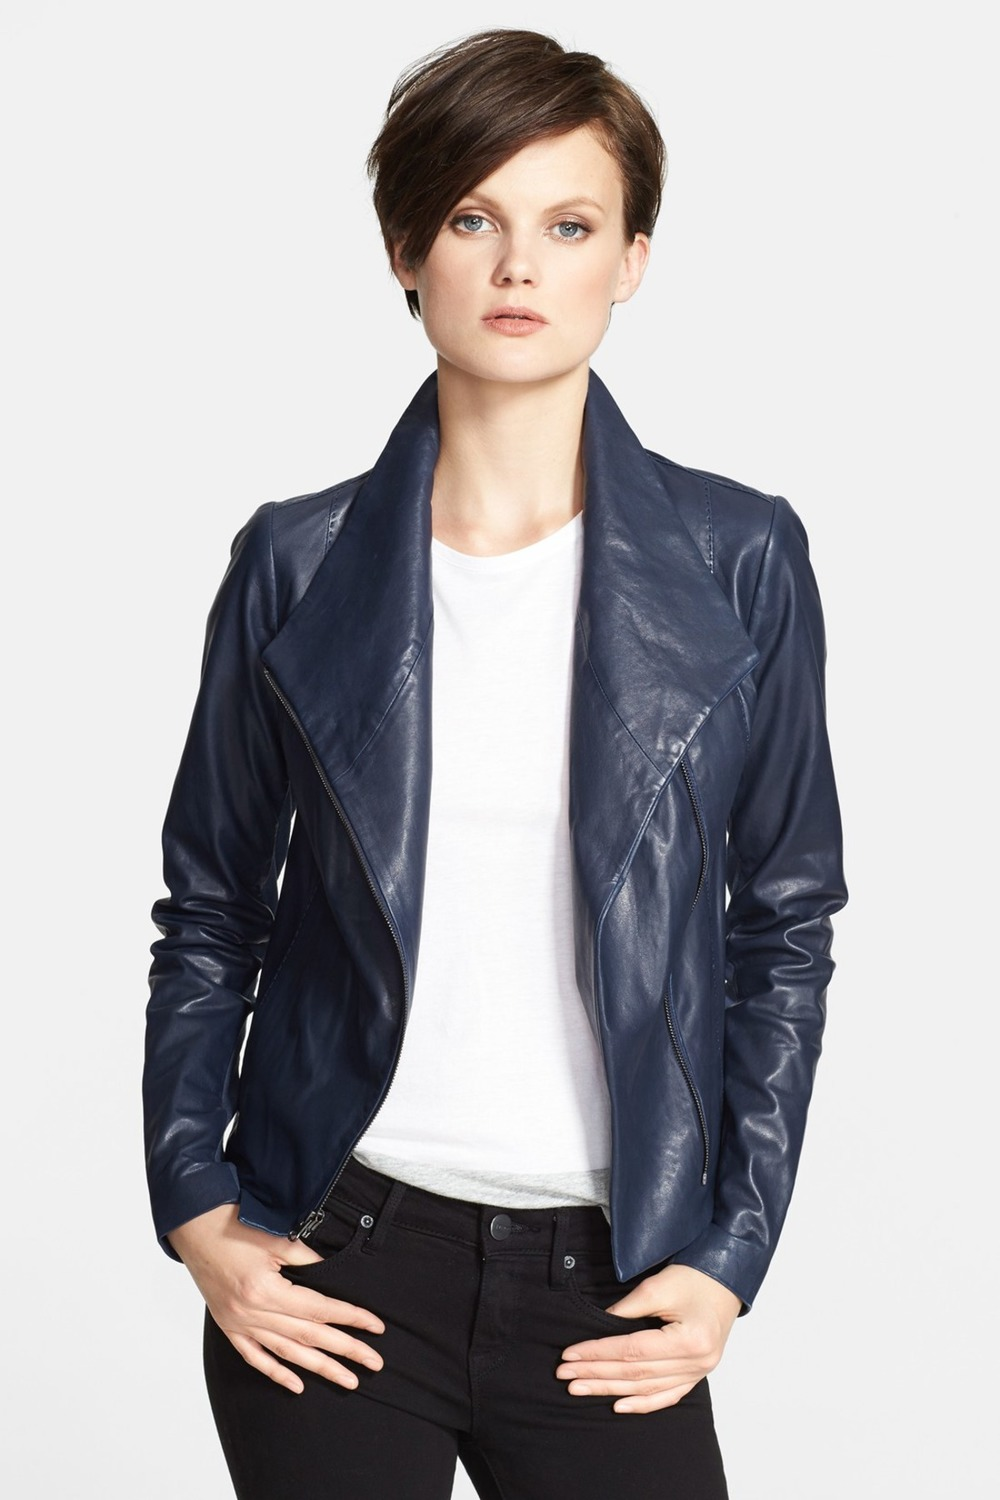 VINCE Lambskin Leather Scuba Jacket. Nordstrom Rack. Was: $995 Now: $348. in Mallard. This super awesome navy/purple also featured in the Poplin video. Same as the blue you purchased from the full line.